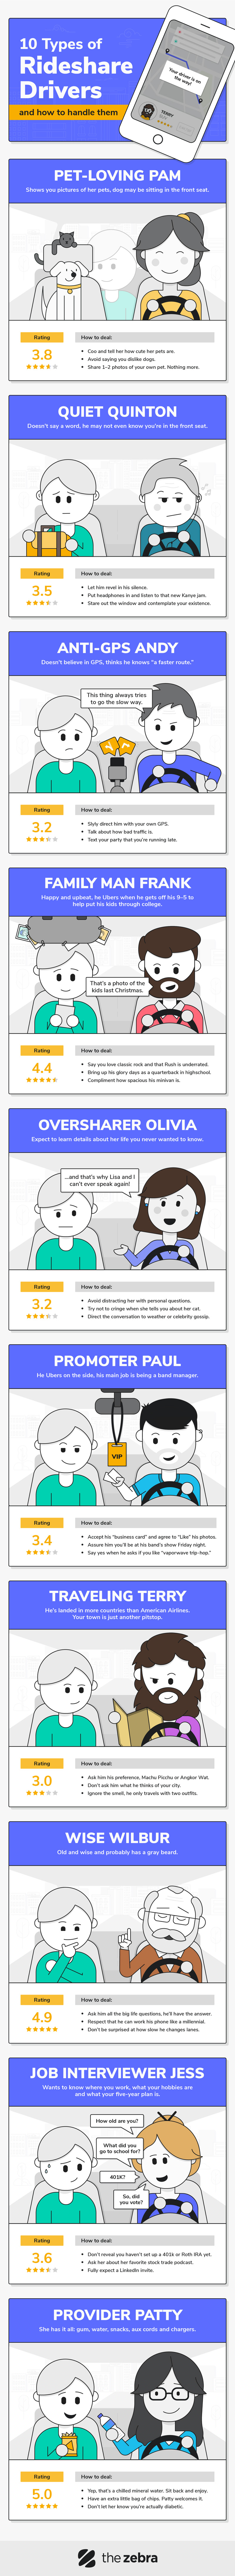 10 Types of Rideshare Drivers [Infographic]